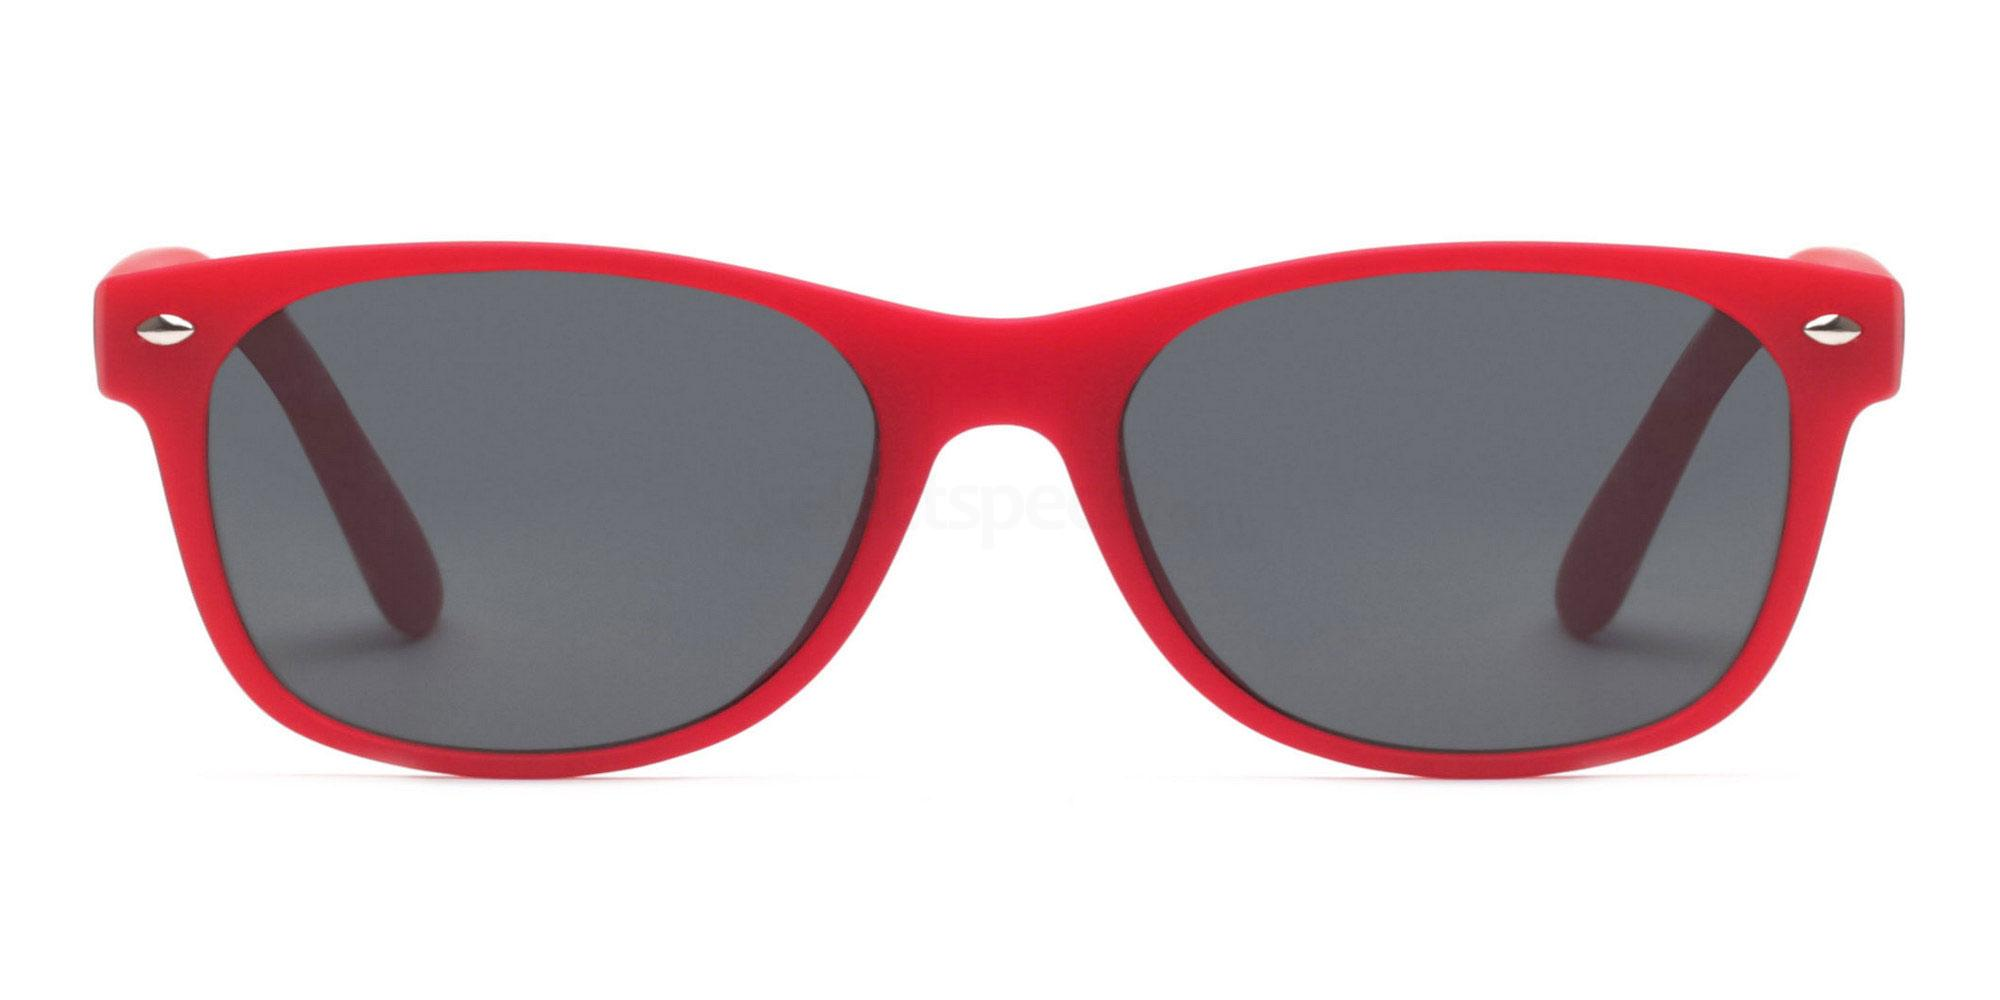 Red S8122 - Red (Sunglasses) Sunglasses, Savannah